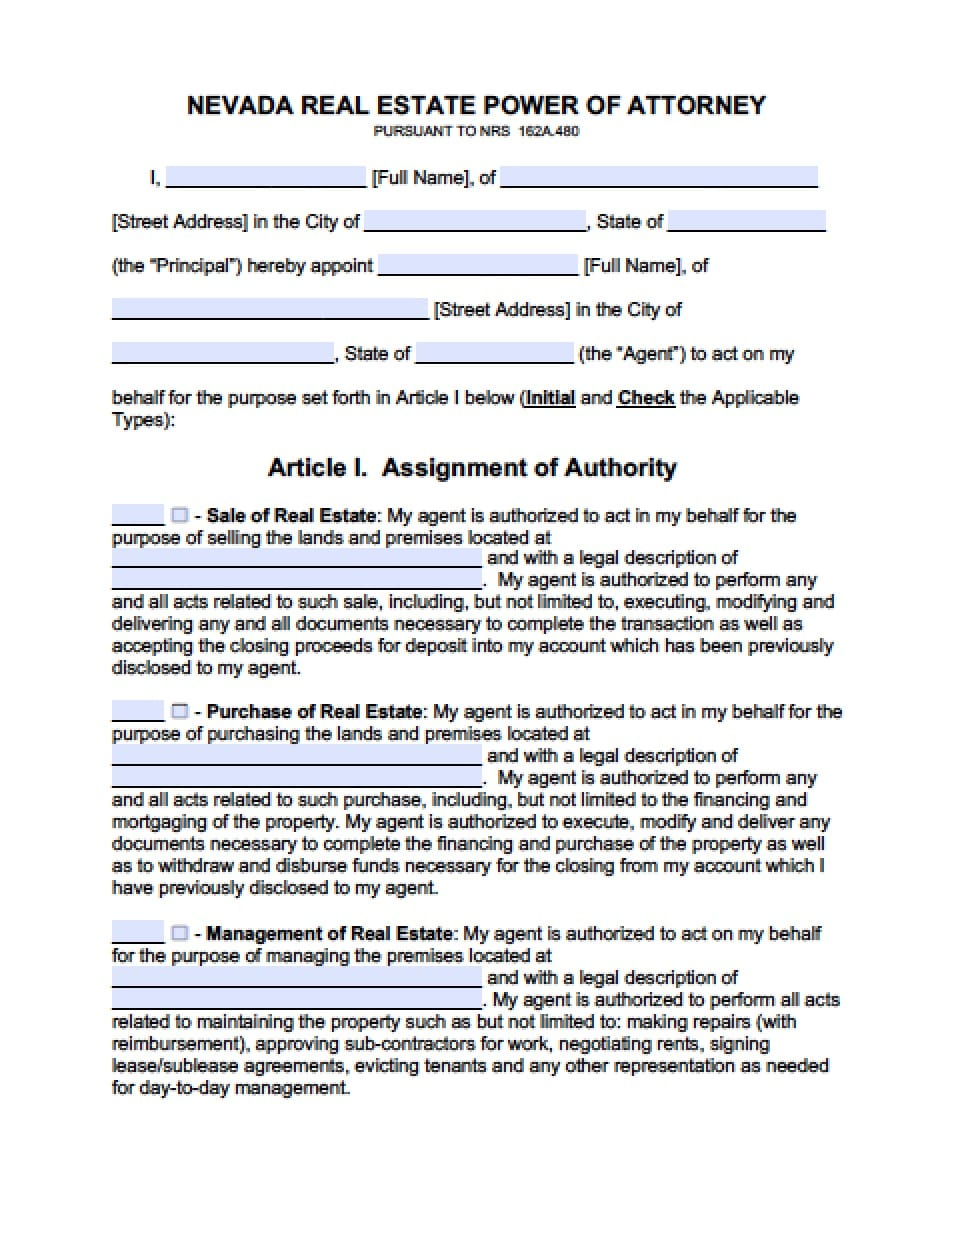 Nevada Real Estate ONLY Power of Attorney Form - Power of Attorney ...